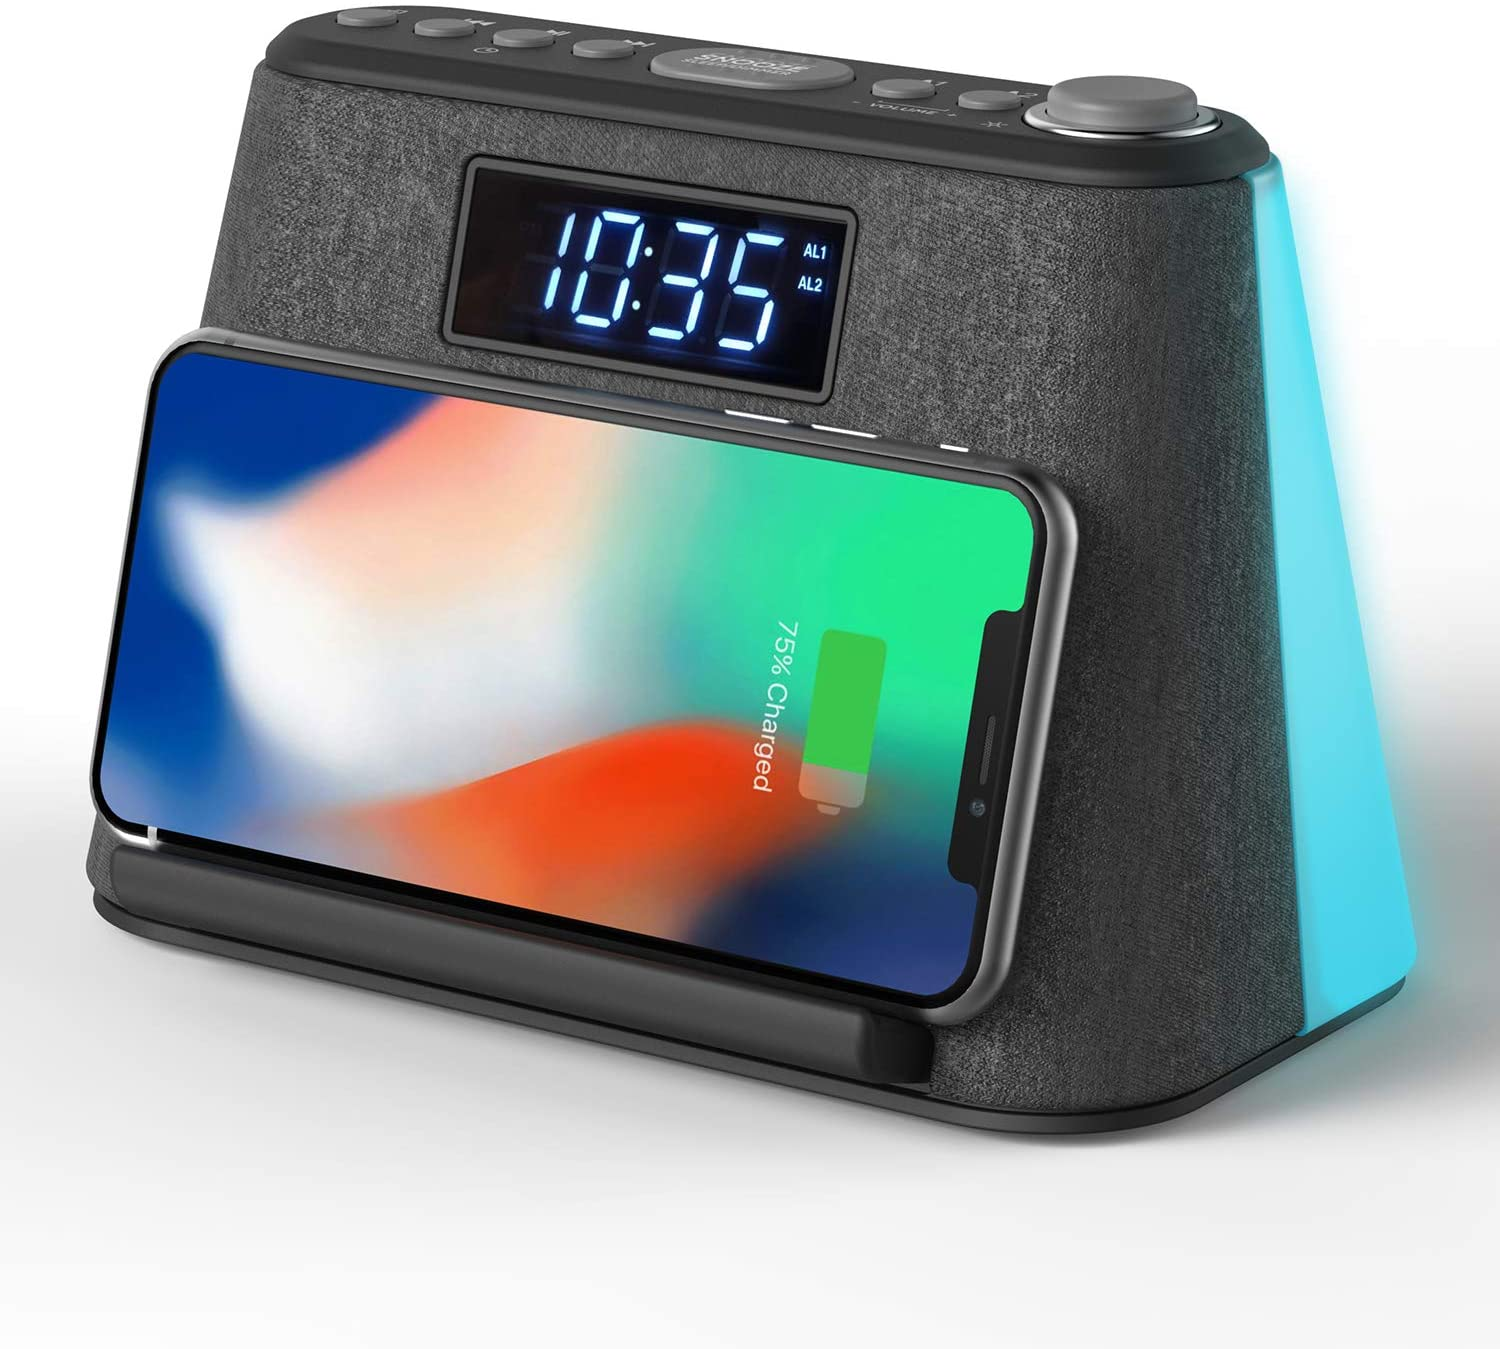 Alarm Clock Bedside FM Radio Non Ticking with USB Charger & Wireless QI Charging, Bluetooth Speaker, RGB LED Night Light, Dimmable Display and White